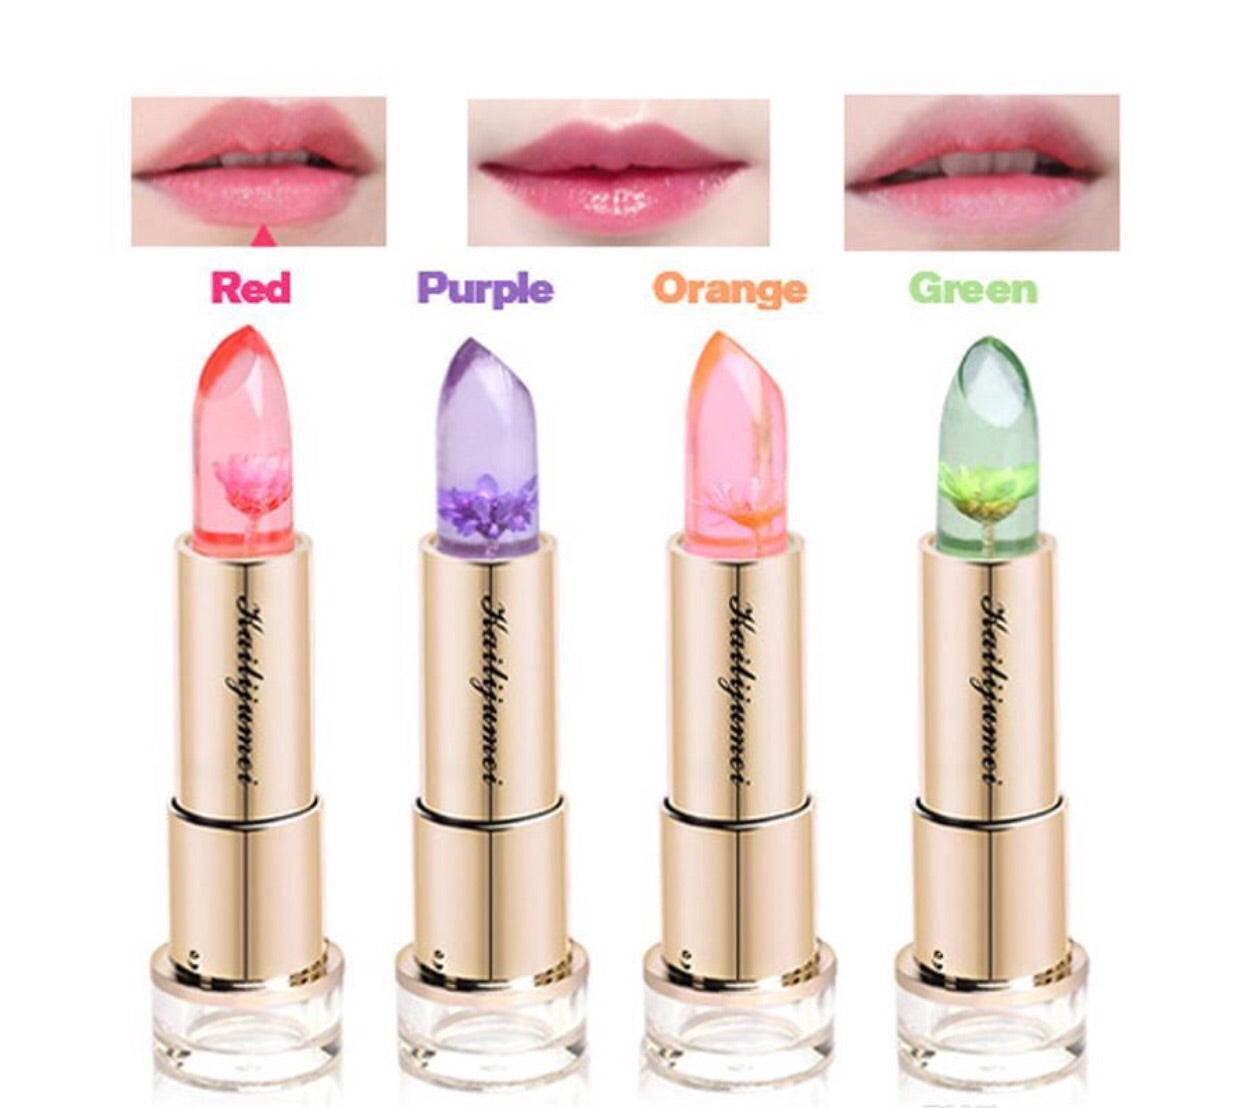 Buy 1 Get Free Kailijumei Floral Jelly Moisturizer Lipsticks Lips Care